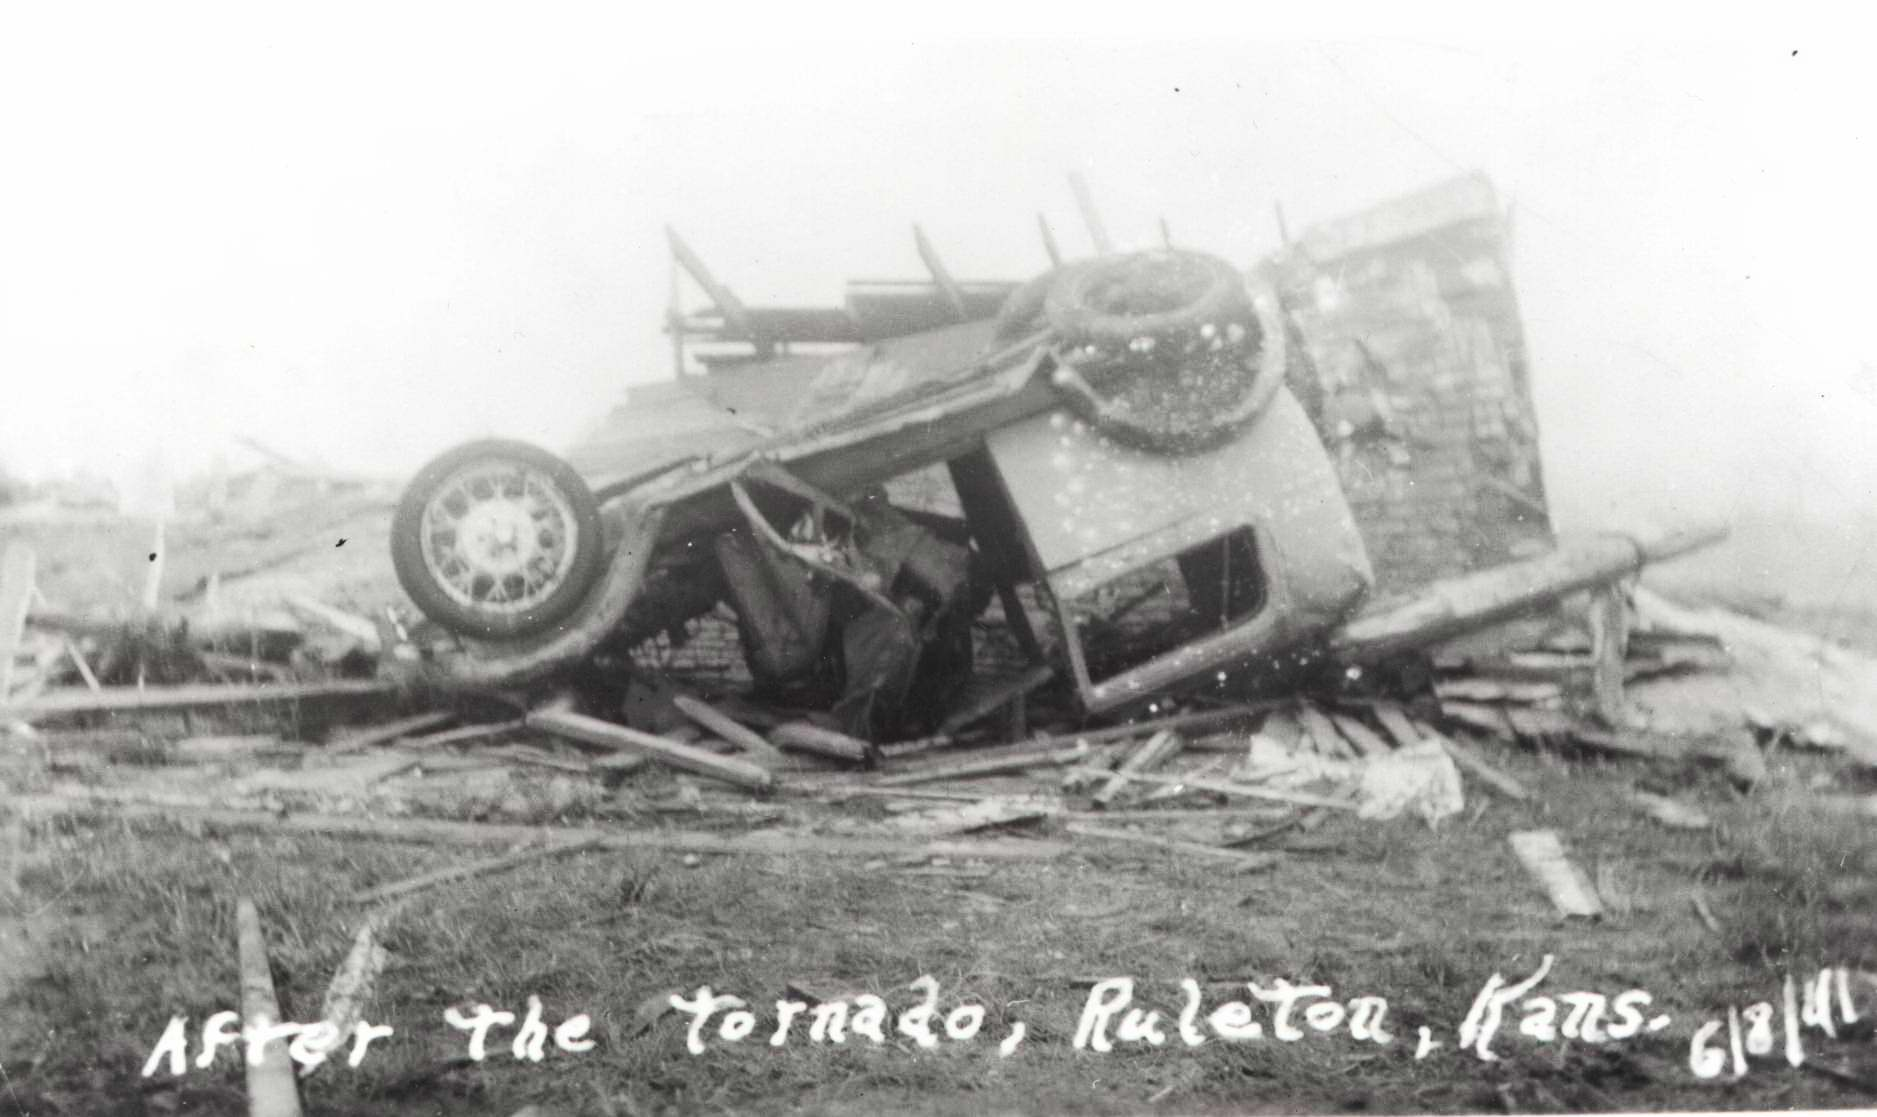 High Plains Museum | PM256MISC David Weber's model A Ford after tornado hit Ruleton in 1941.